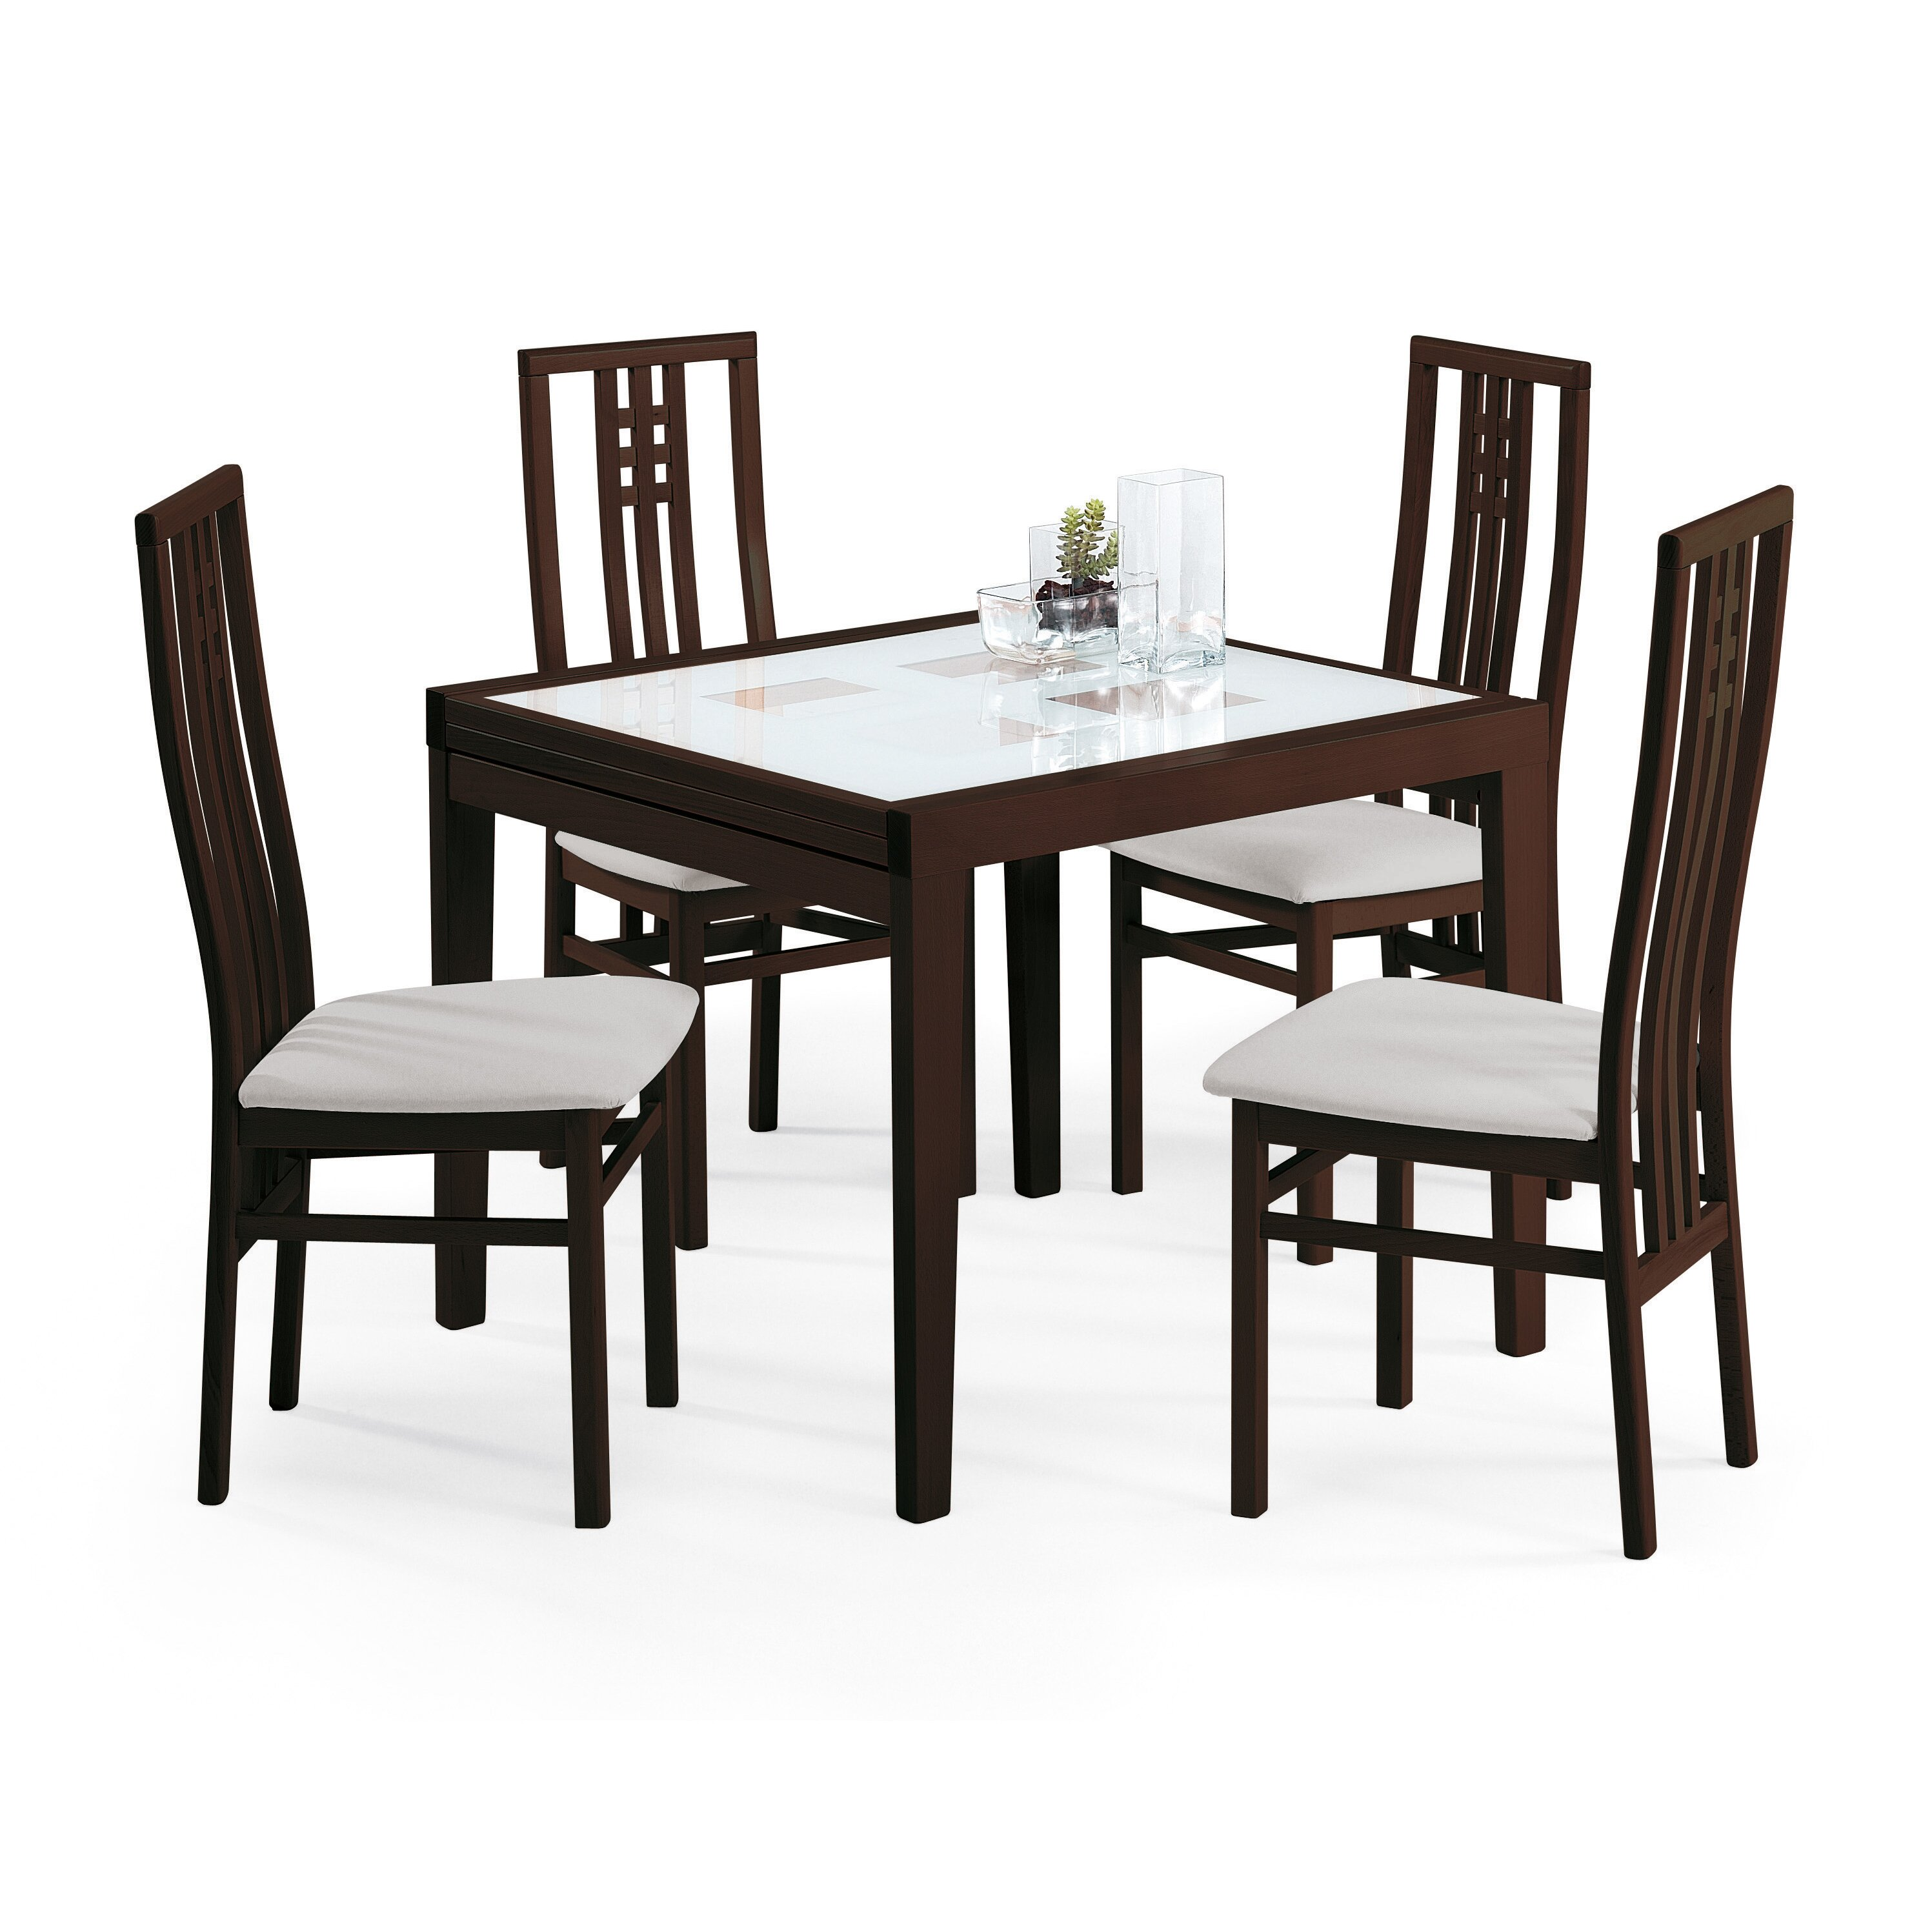 Poker Dining Room Table: Poker-90 Extendable Dining Table & Reviews